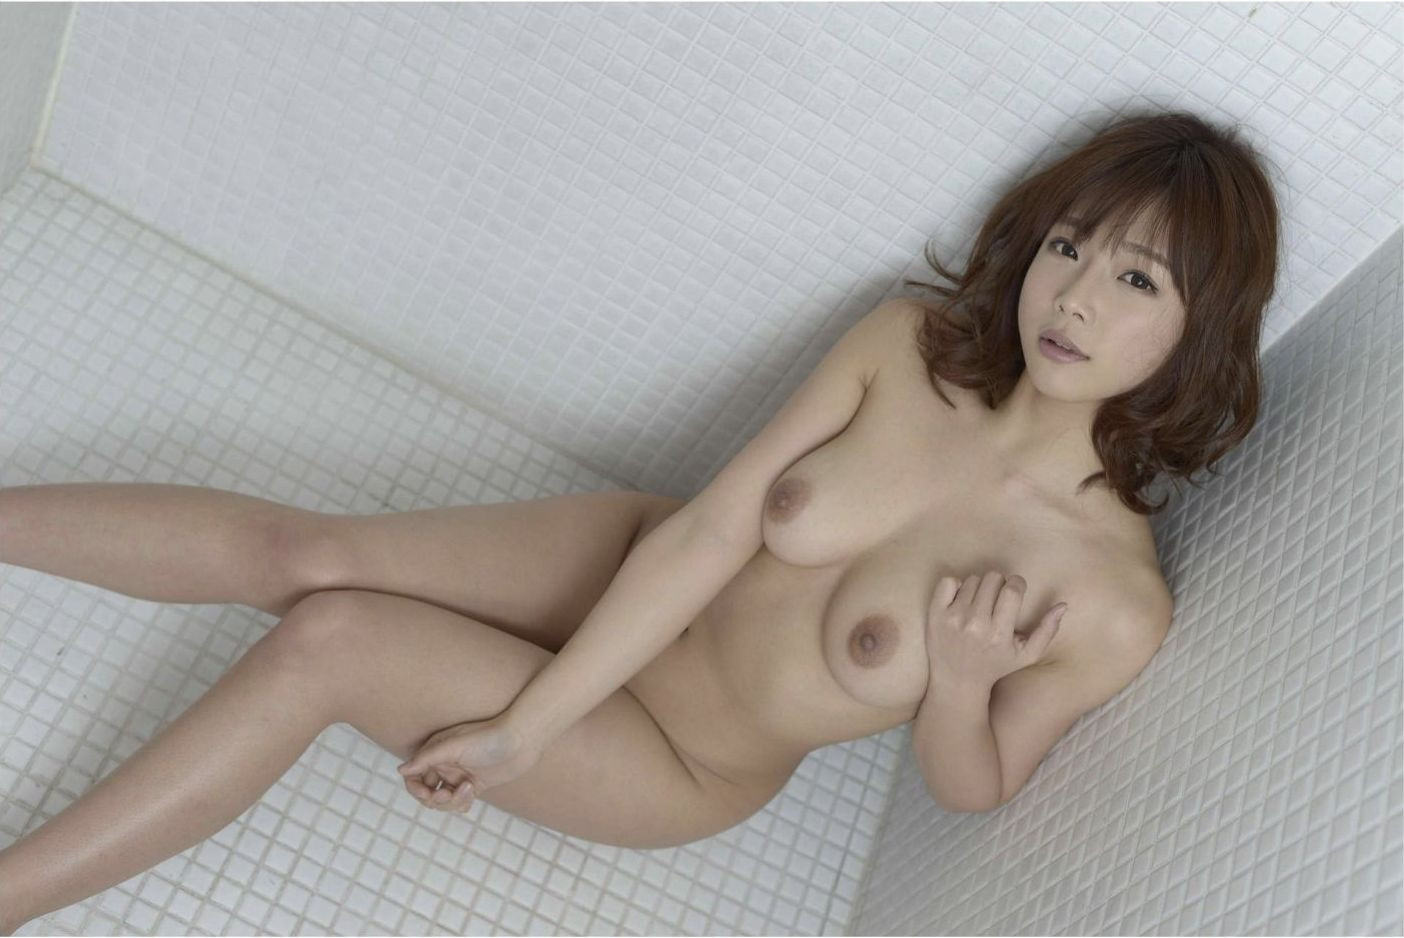 SOFT ON DEMAND GRAVURE COLLECTION 紗倉まな02 photo 141